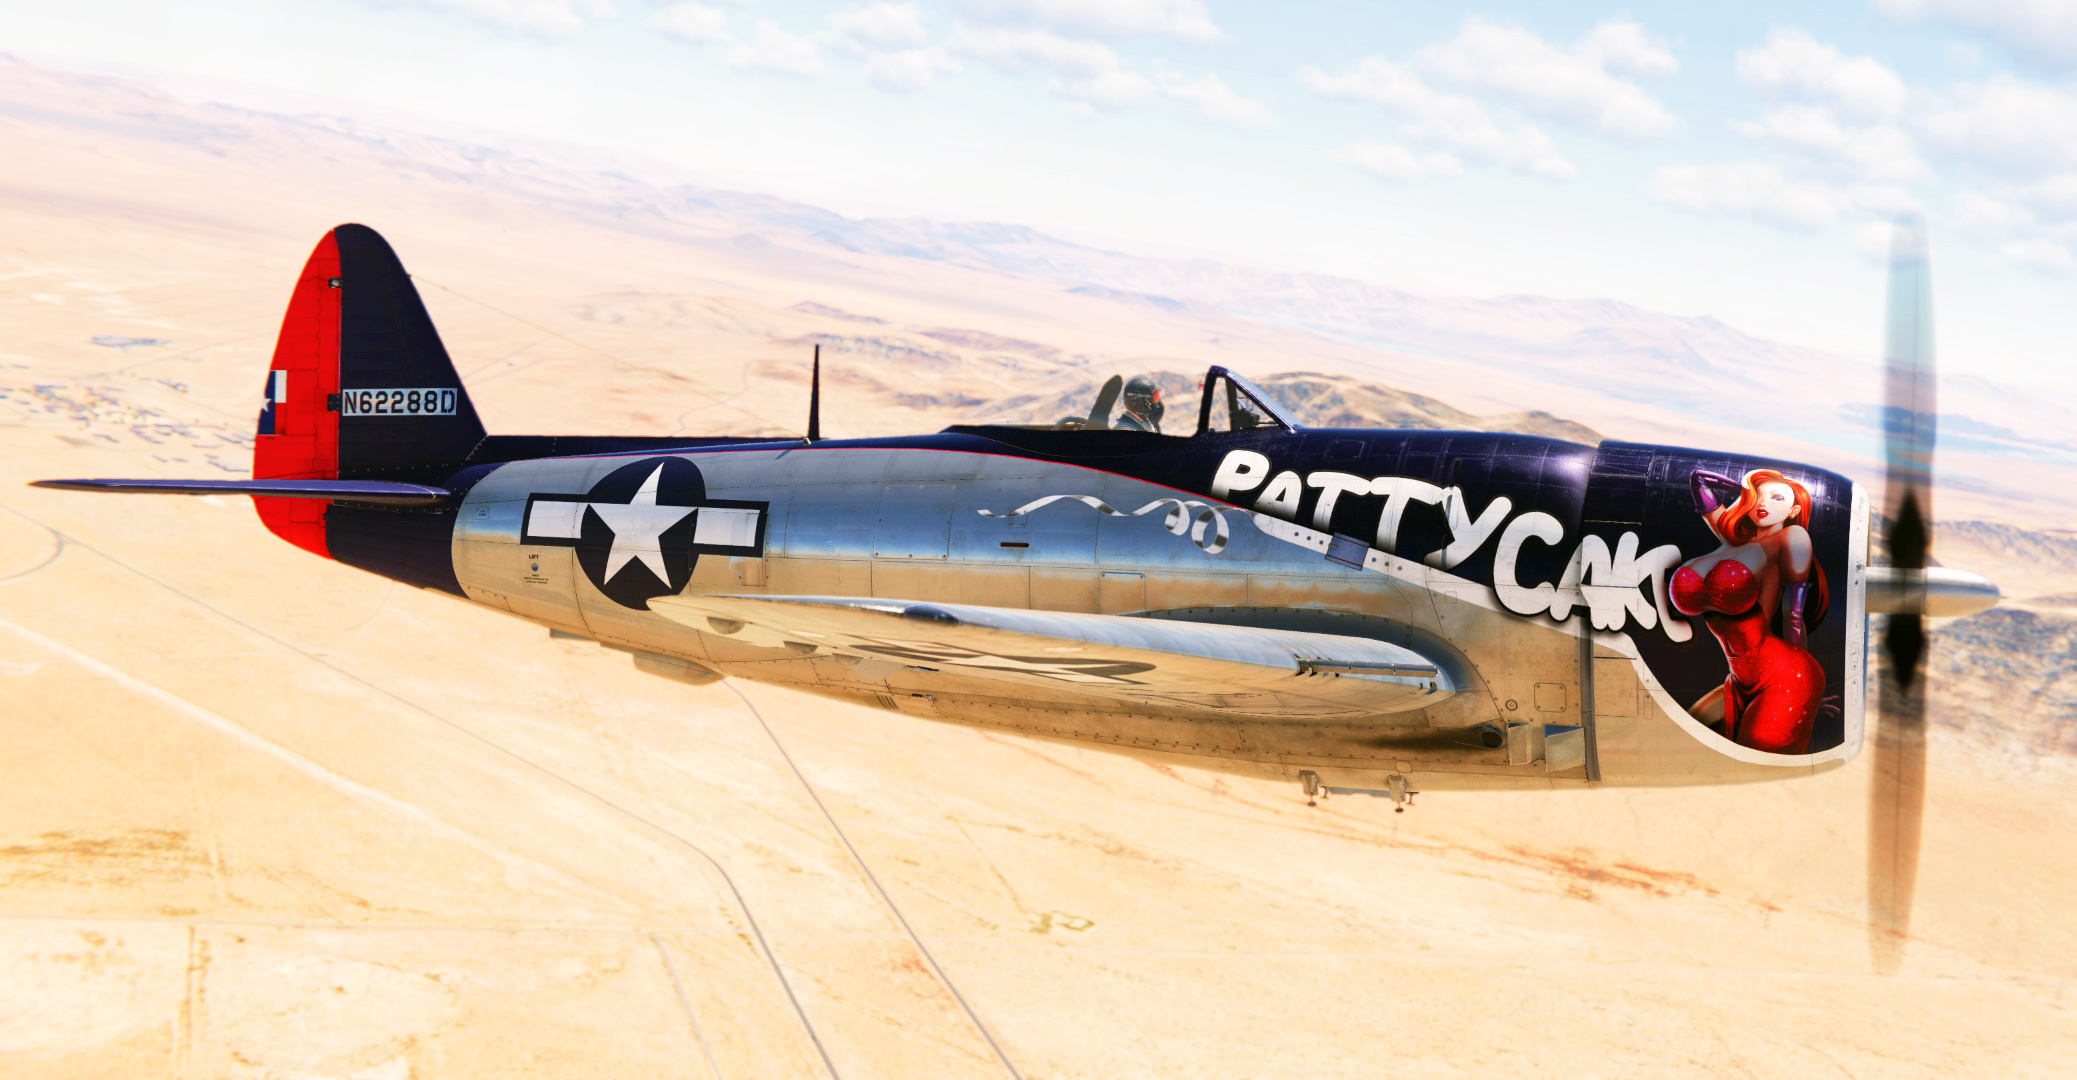 P-47D Art Livery - Patty Cake [Fictional]